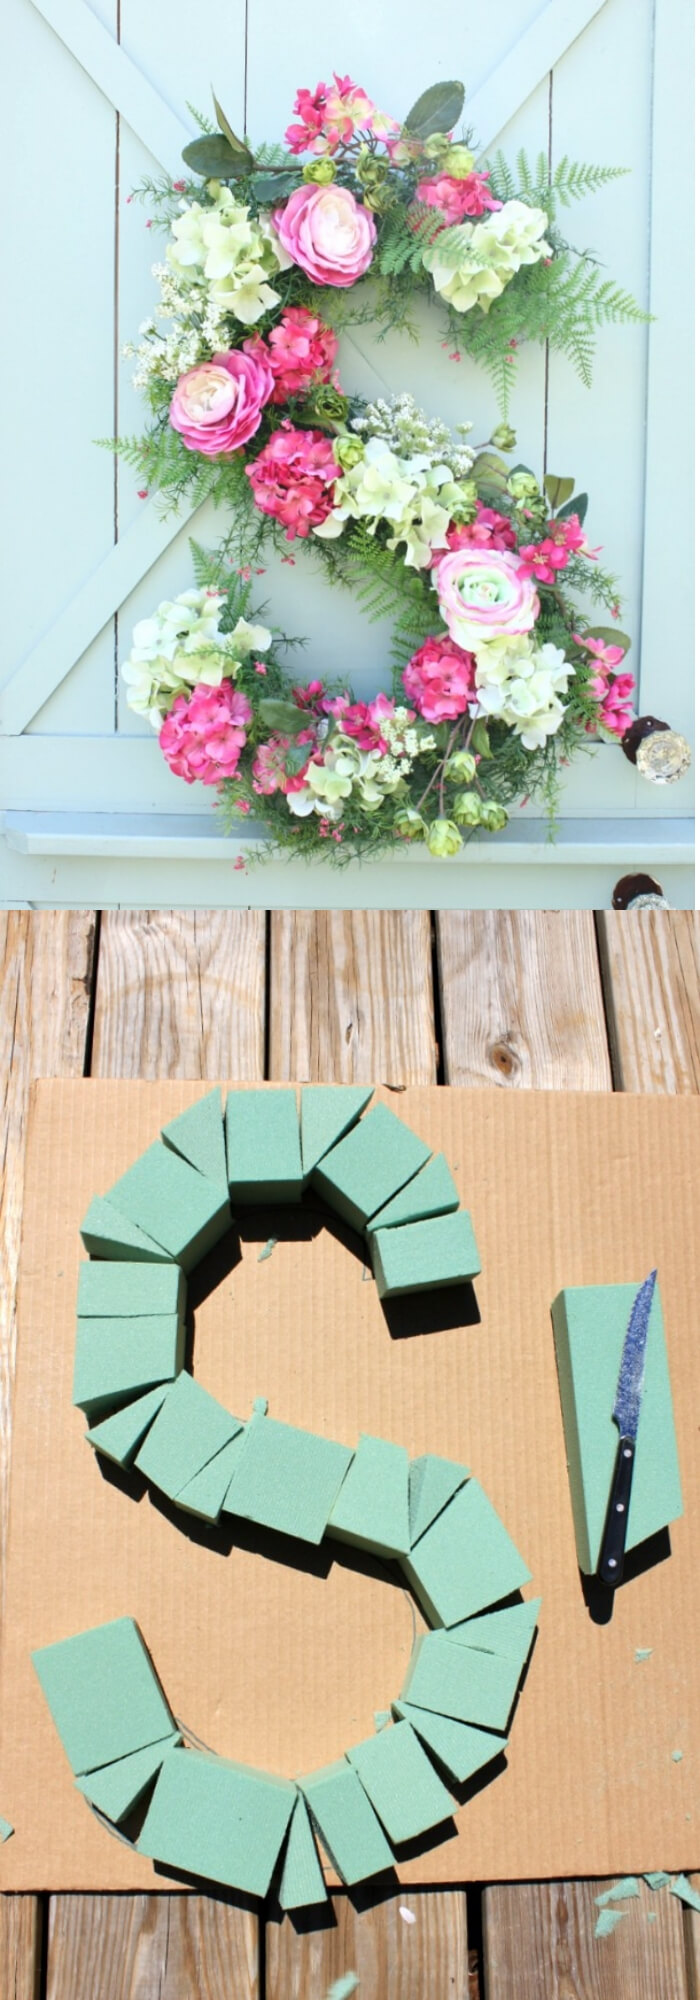 Easy and Simple DIY Spring Wreath Ideas | loral Monogram Wreath